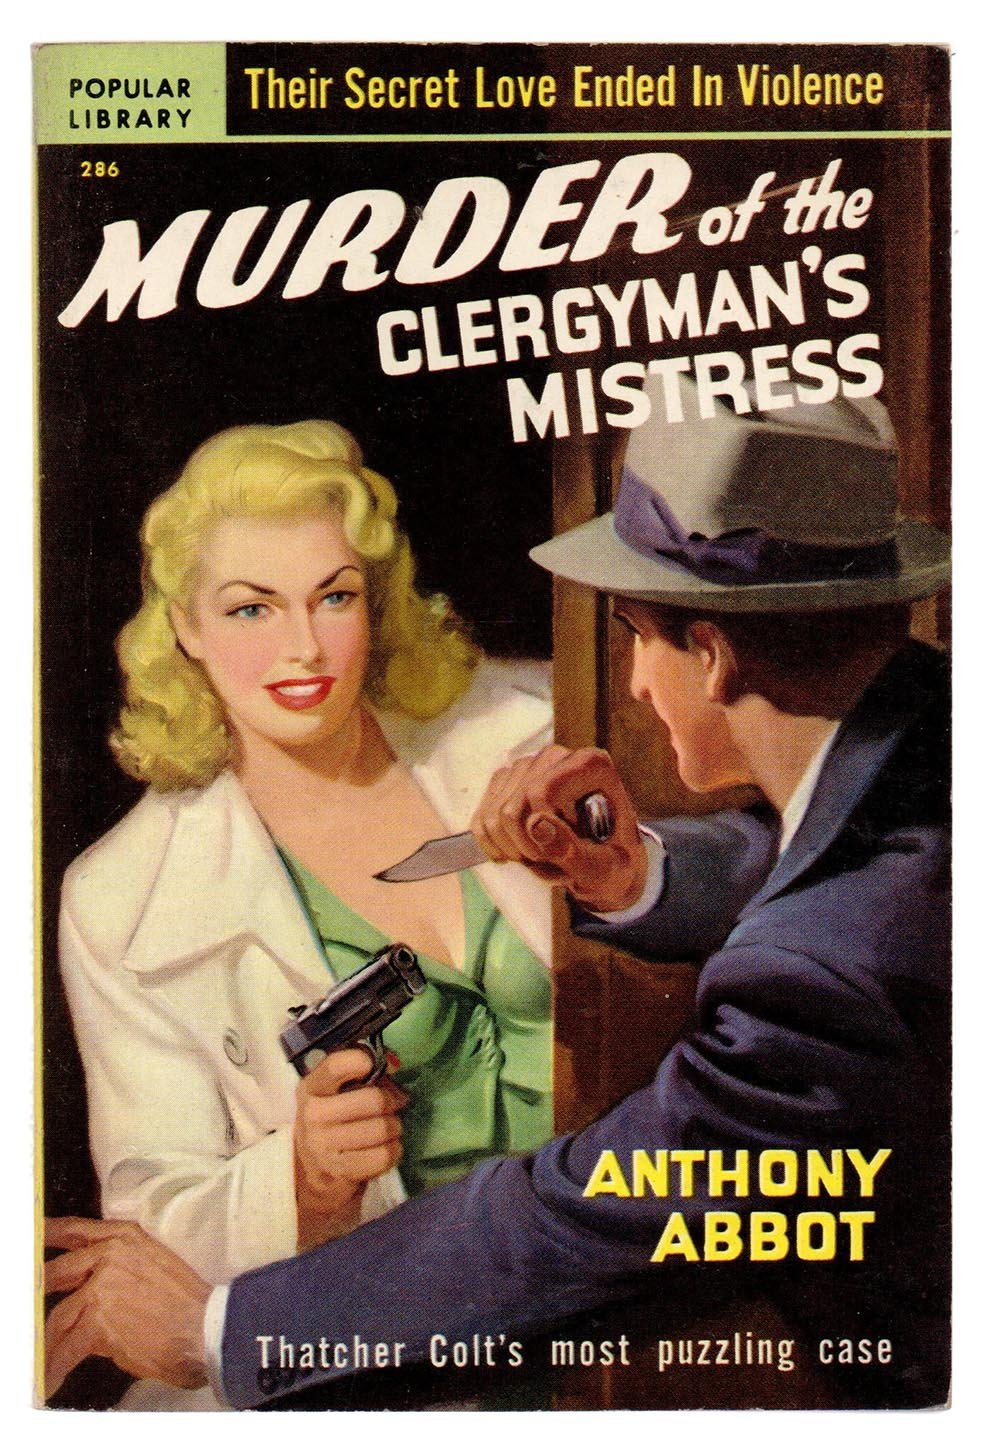 Murder of the Clergyman's Mistress